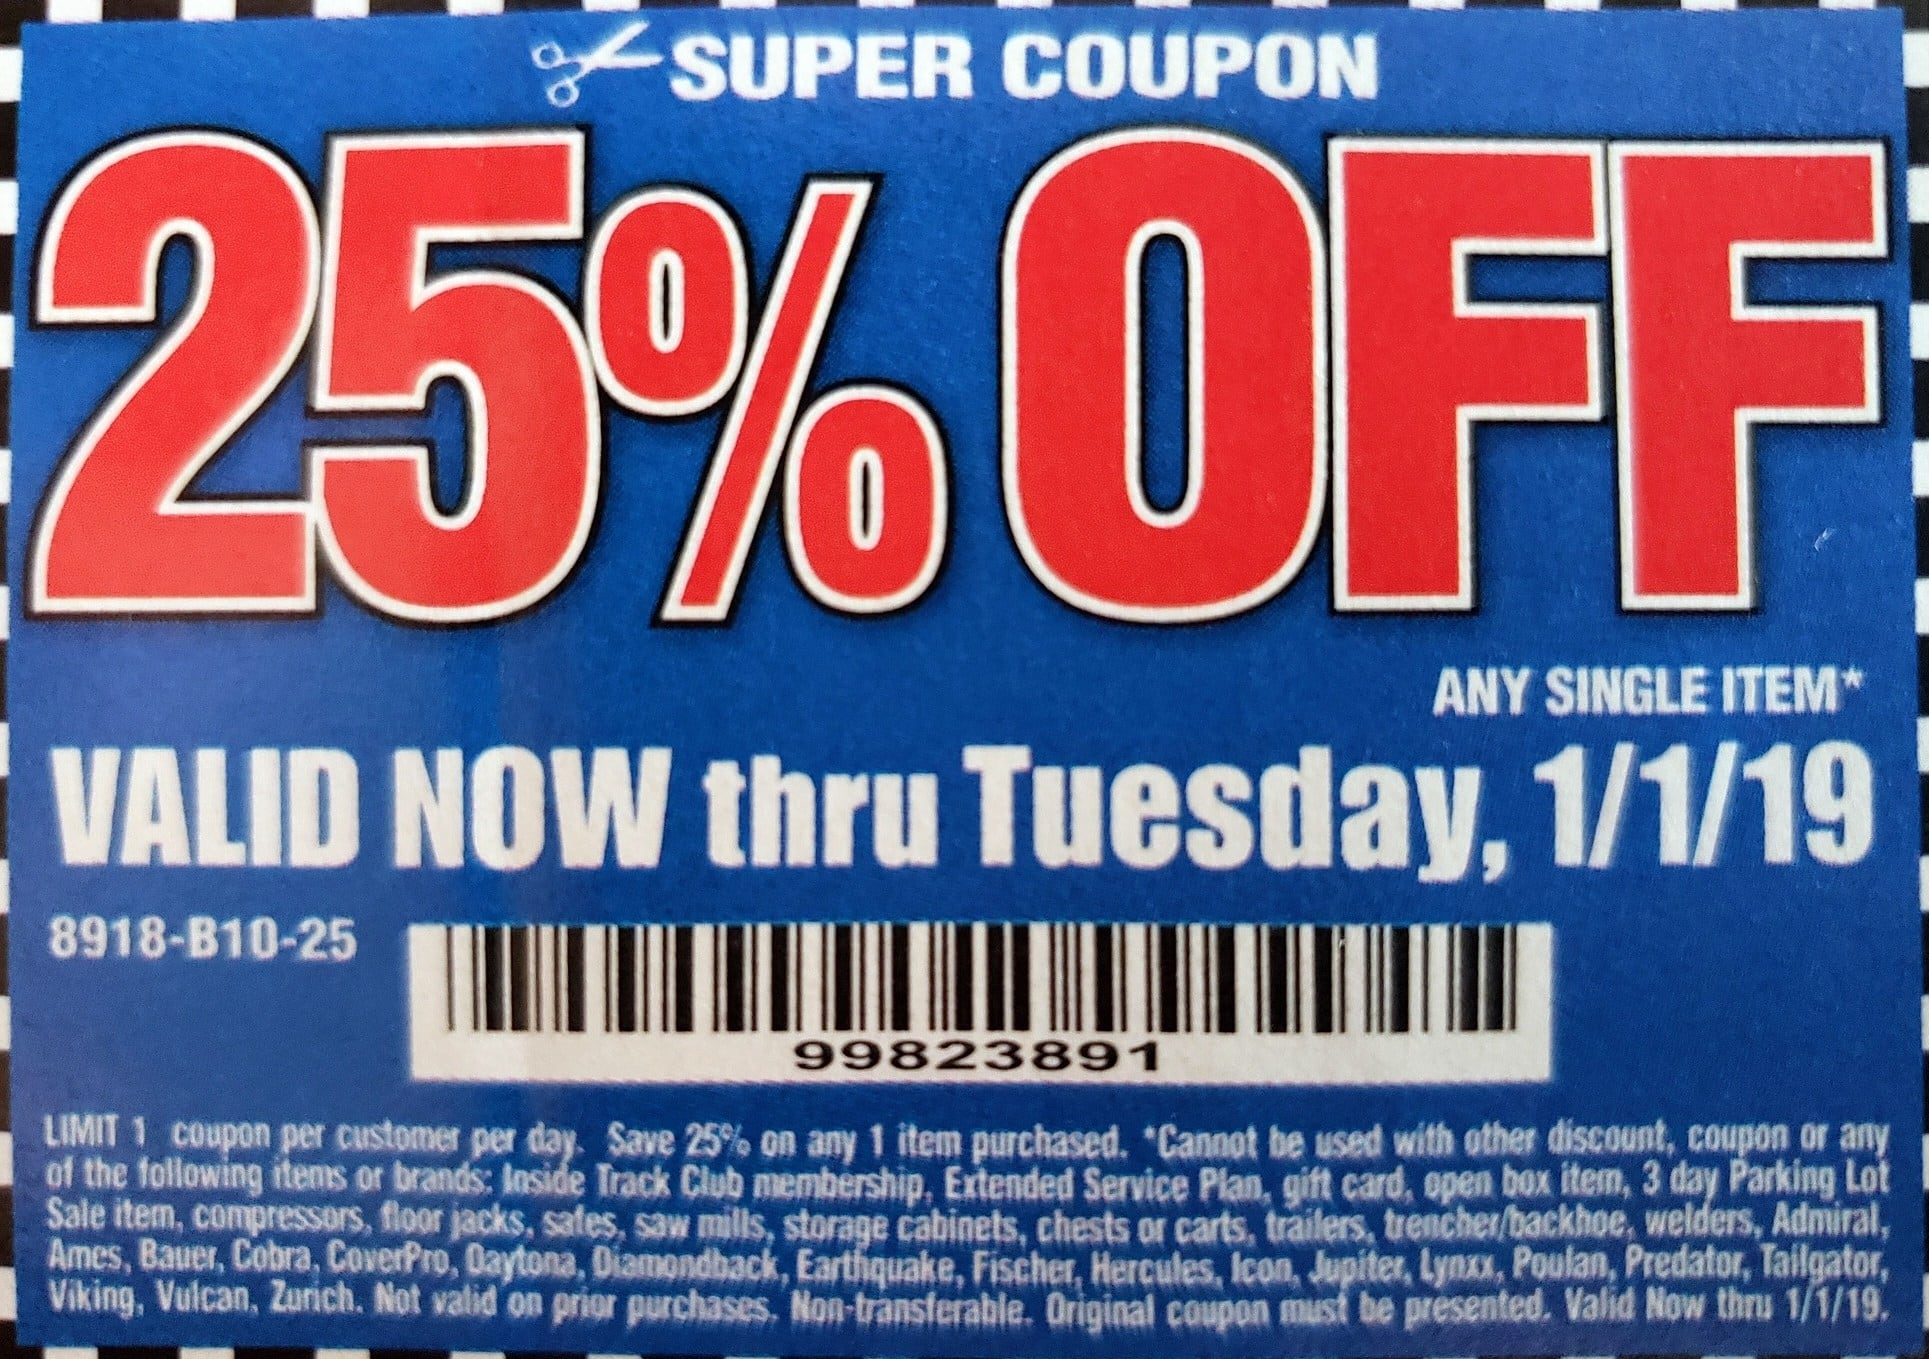 Harbor Freight Coupon Thread Page 808 Slickdeals Net